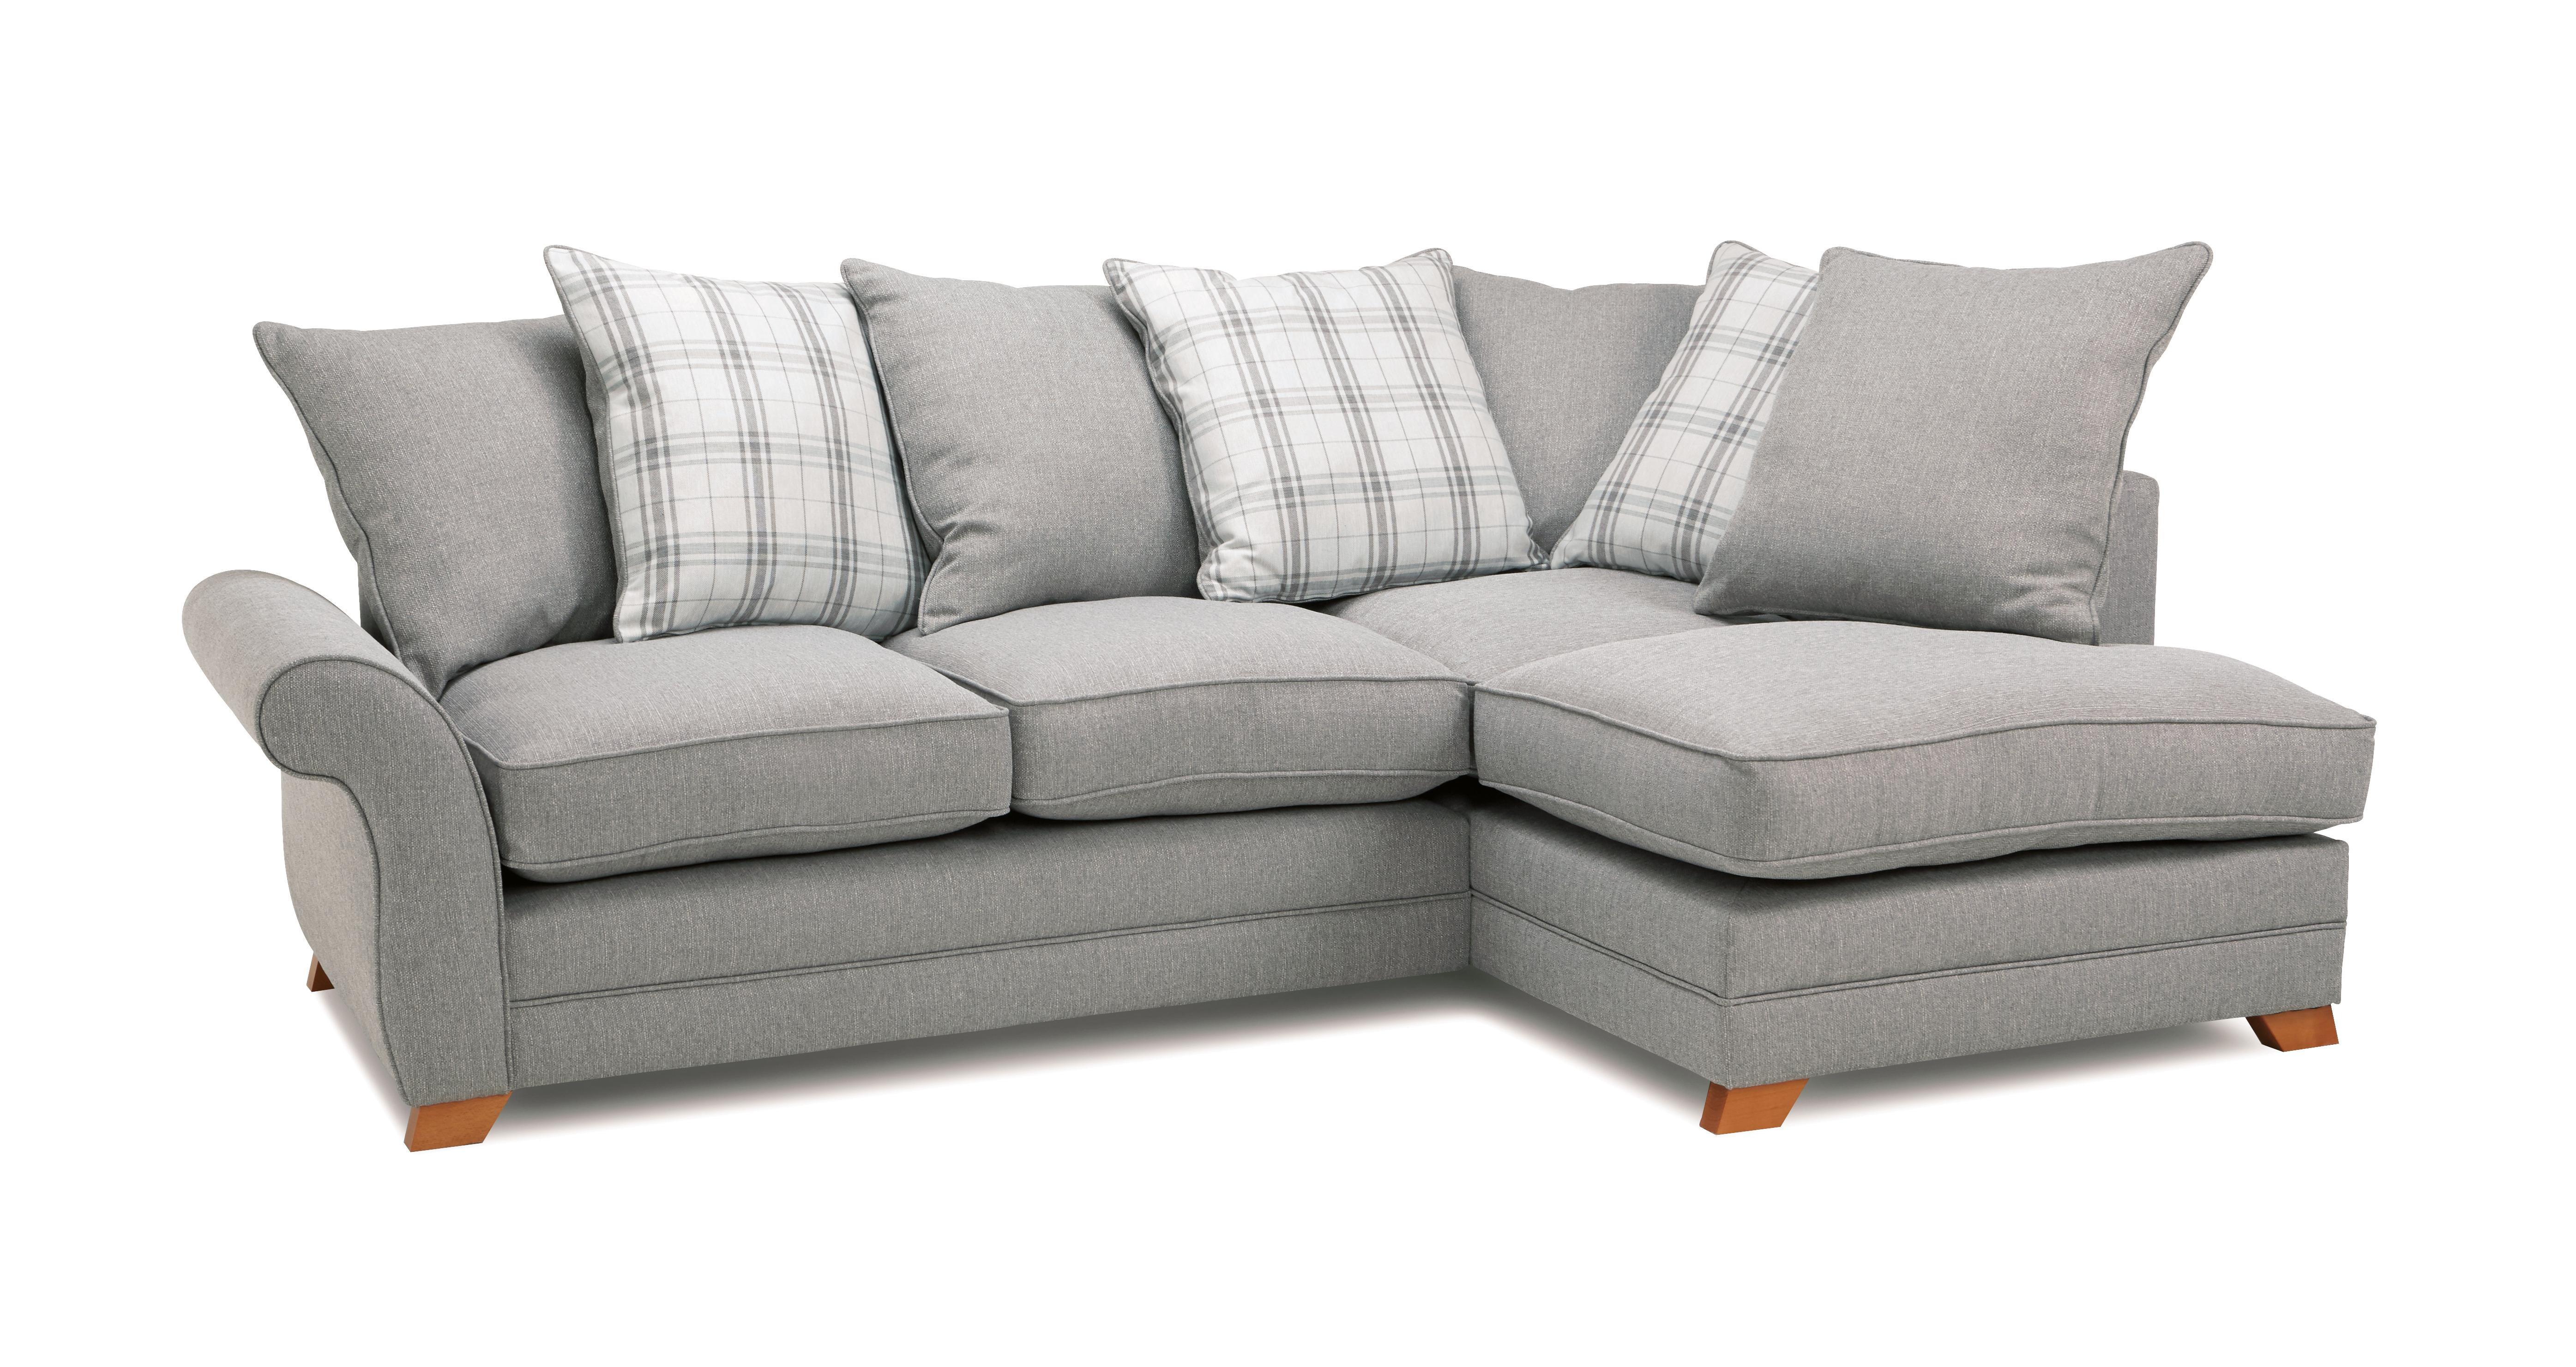 discontinued sofas uk how to repair fabric sofa tear dfs clearance corner stkittsvilla